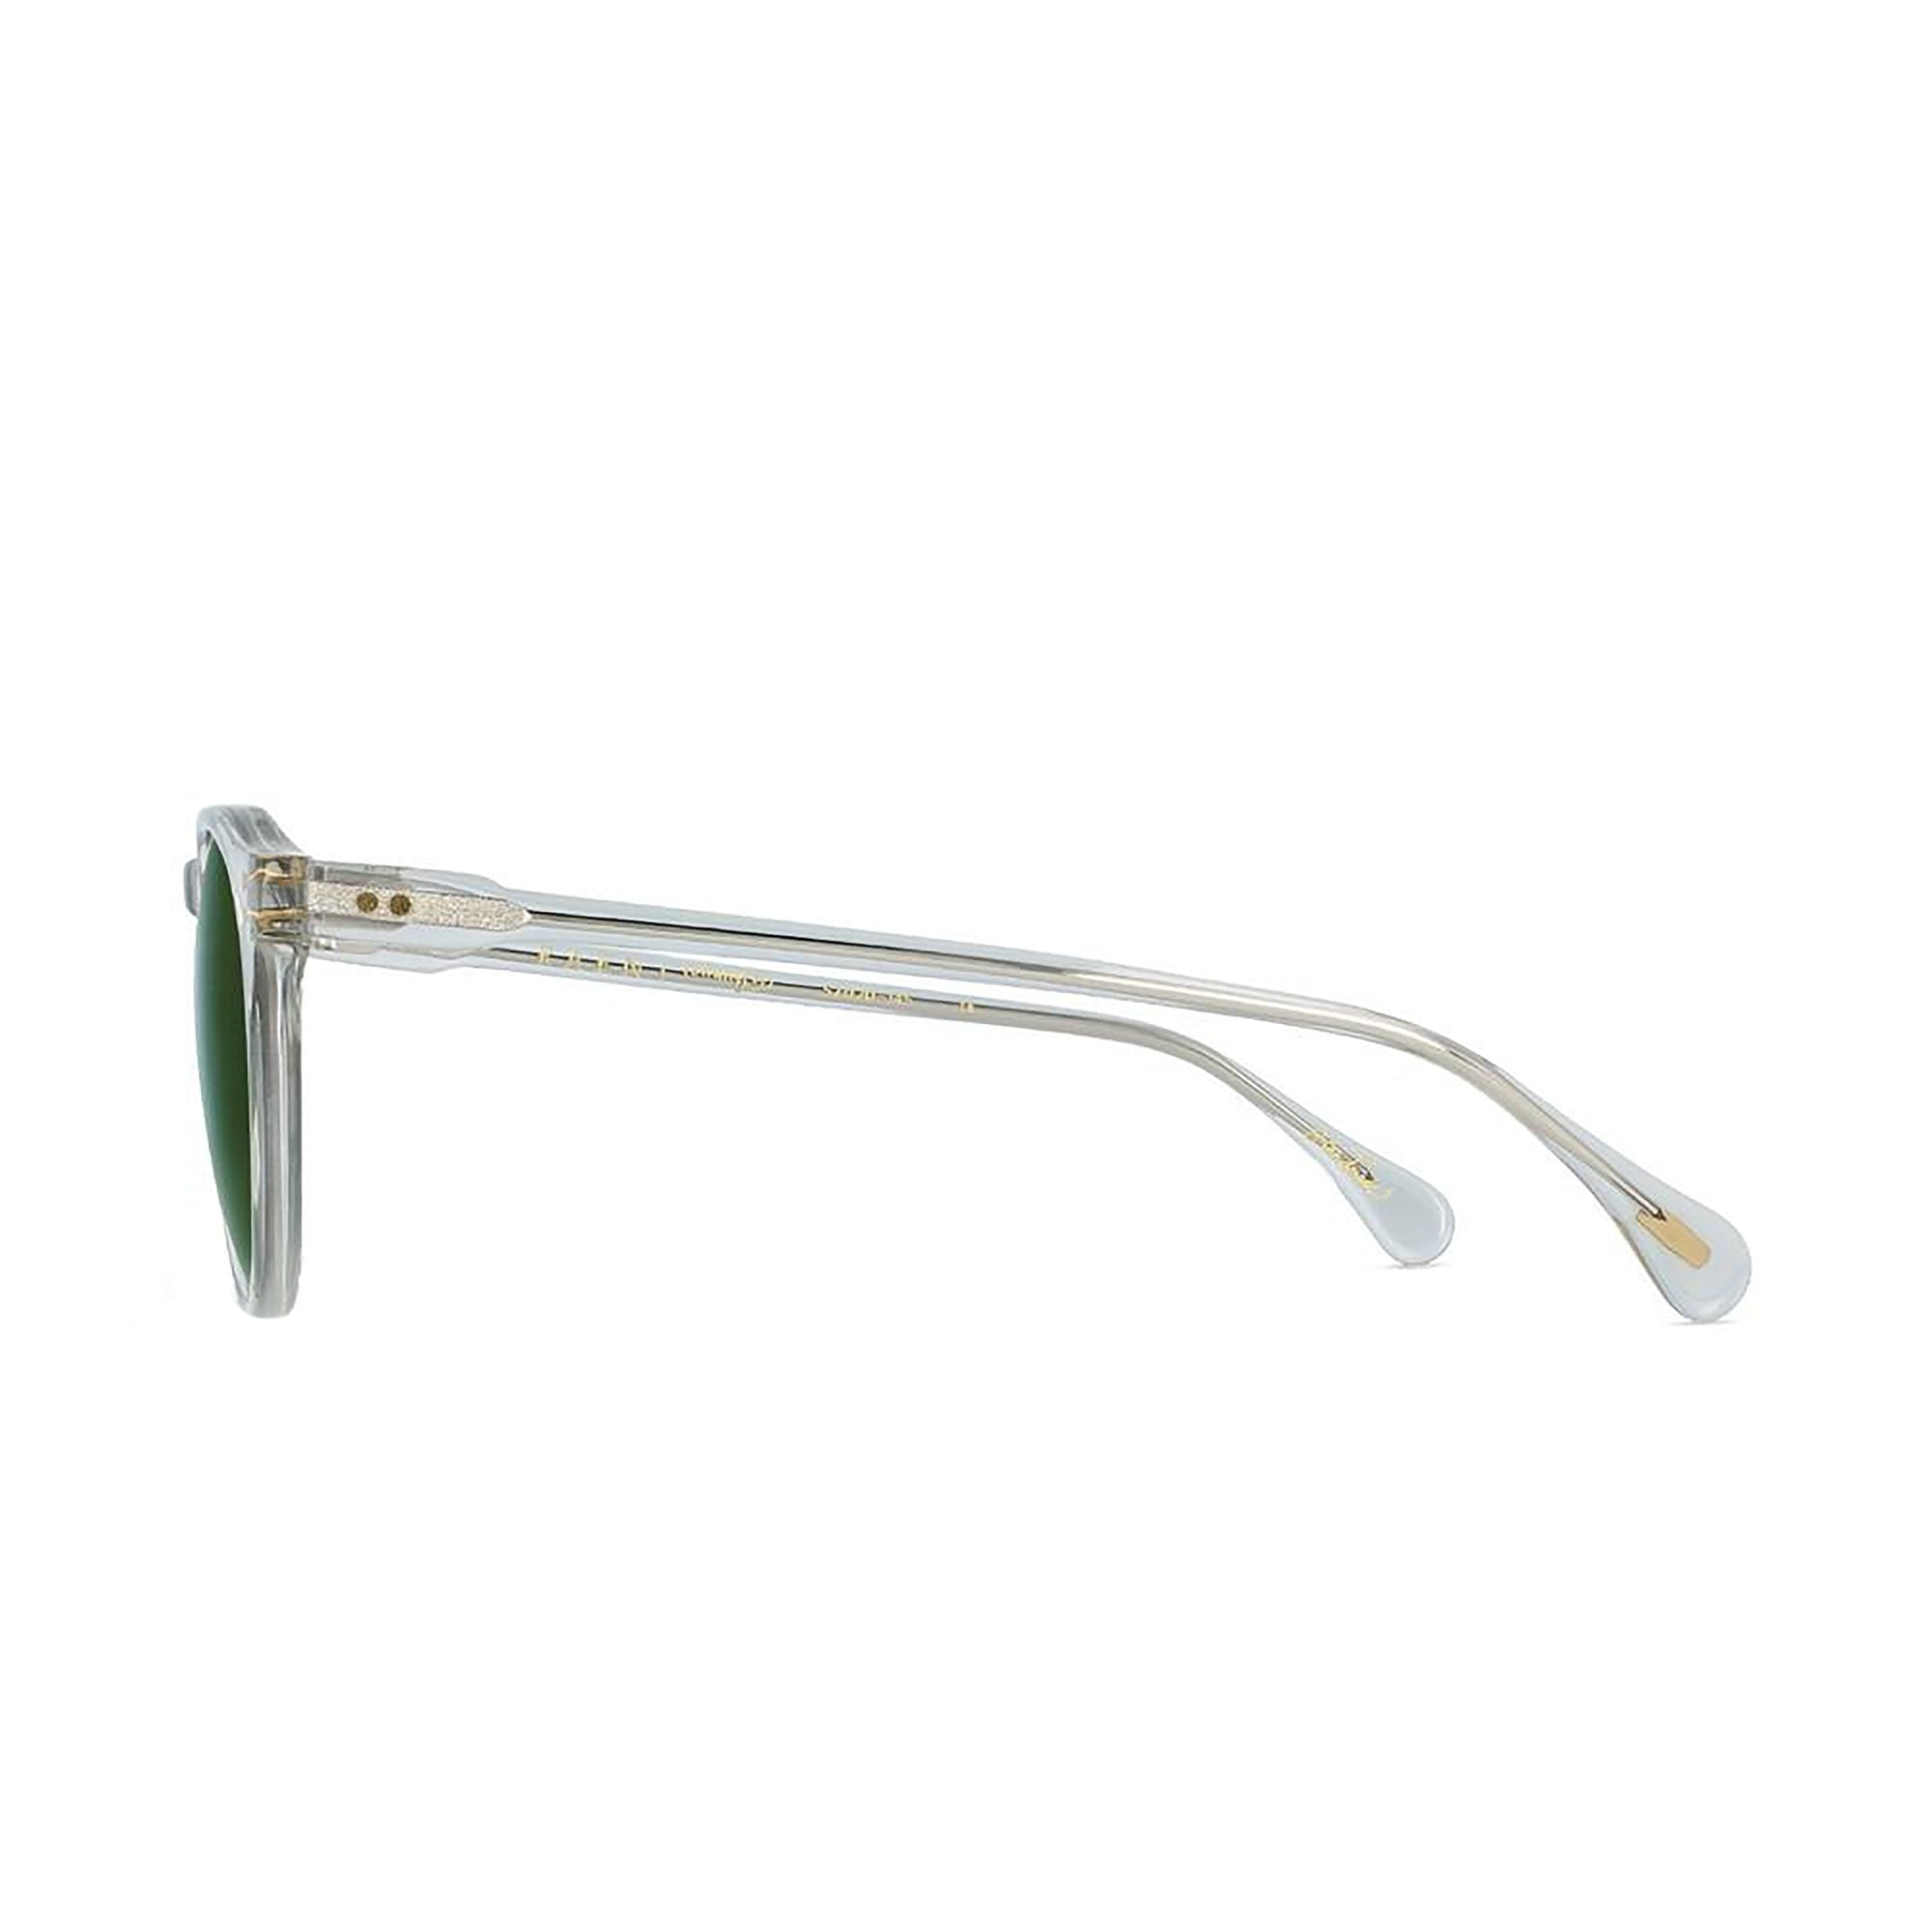 RAEN - Remmy Sunglasses - Fog Crystal / Bottle Green - Mt Maunganui Stockist - Paper Plane